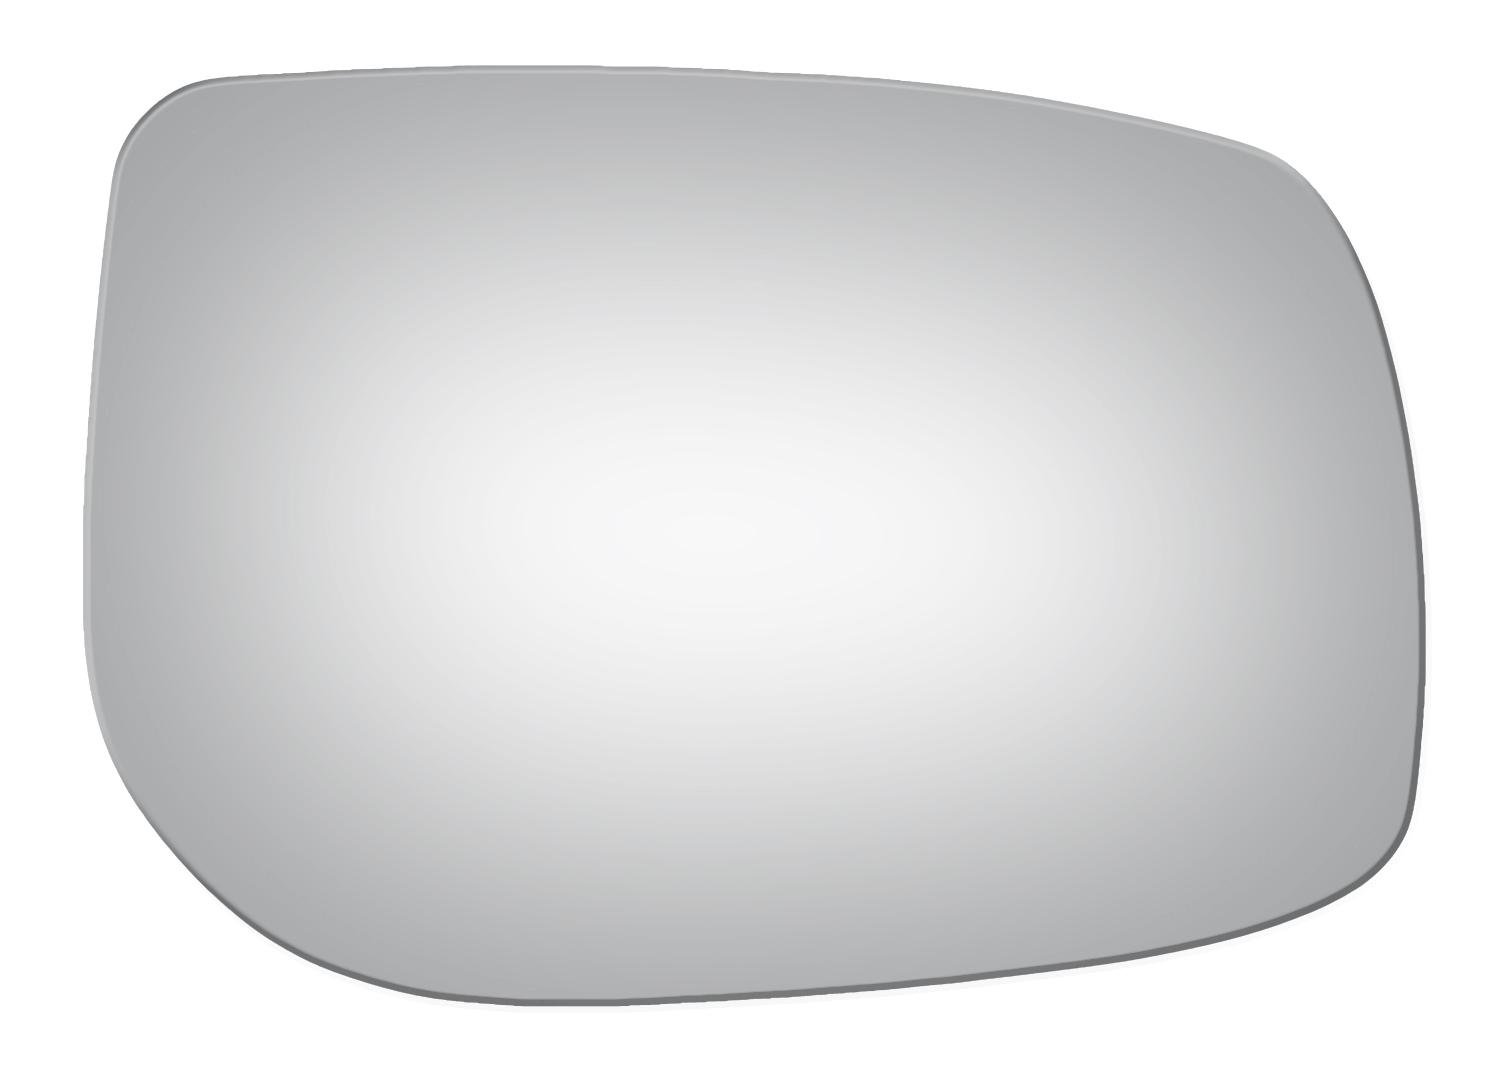 2006-2012 TOYOTA YARIS Burco 5225 Convex Passenger Side Replacement Mirror Glass for 2008-2014 SCION xD